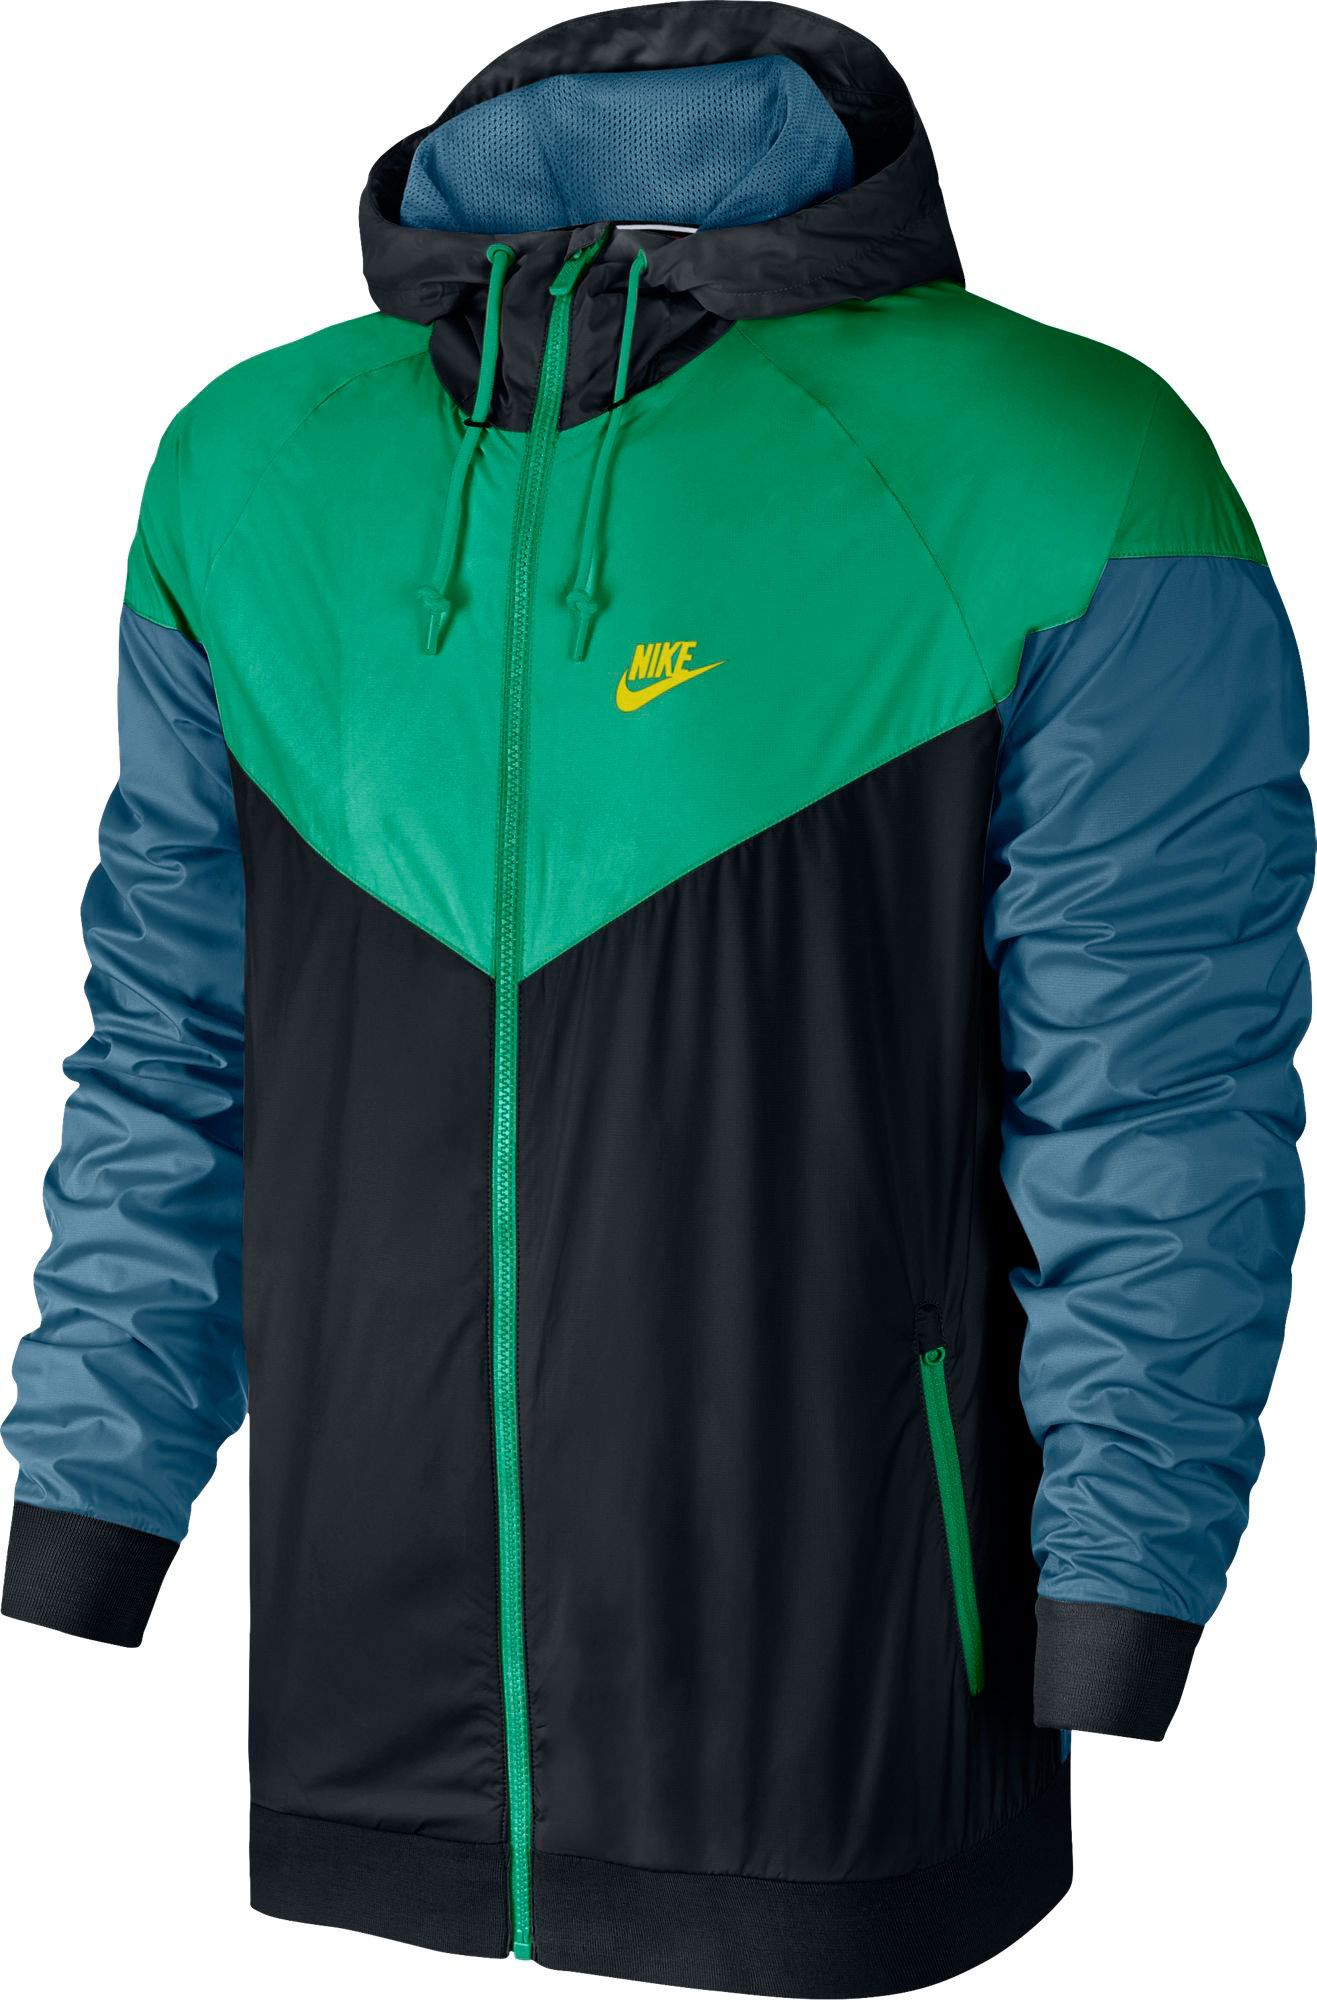 Big and Tall Jackets for Men | DICK'S Sporting Goods